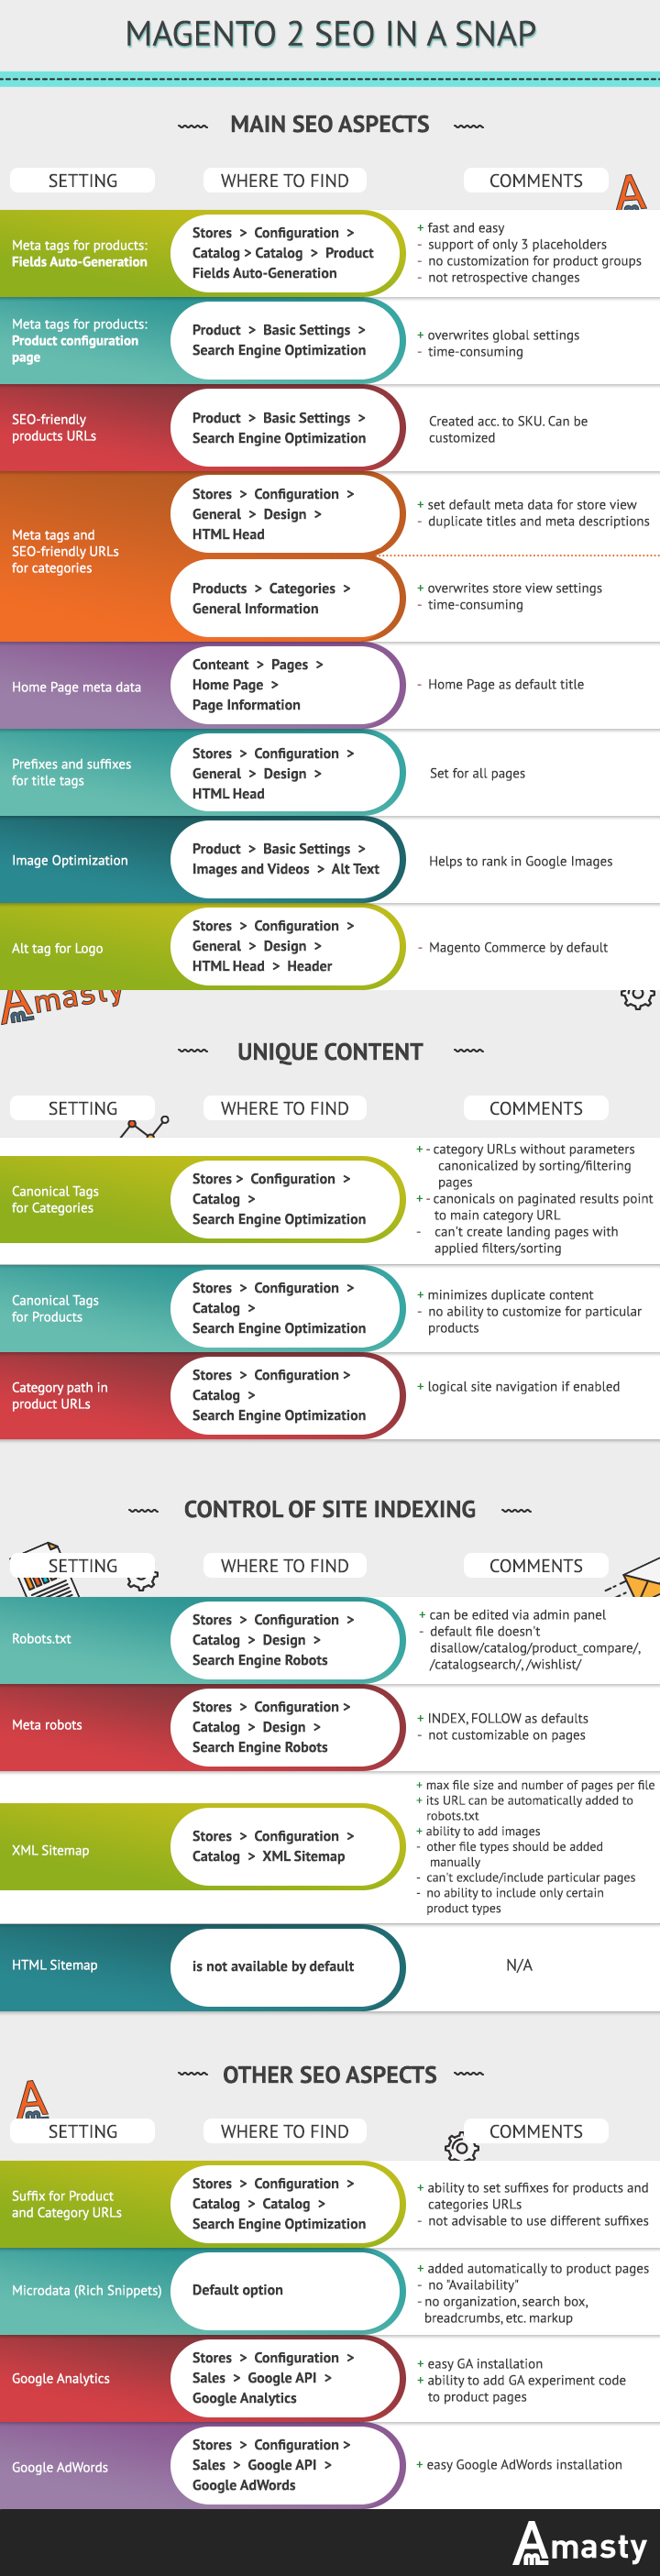 Magento 2 SEO in a Snap infographic